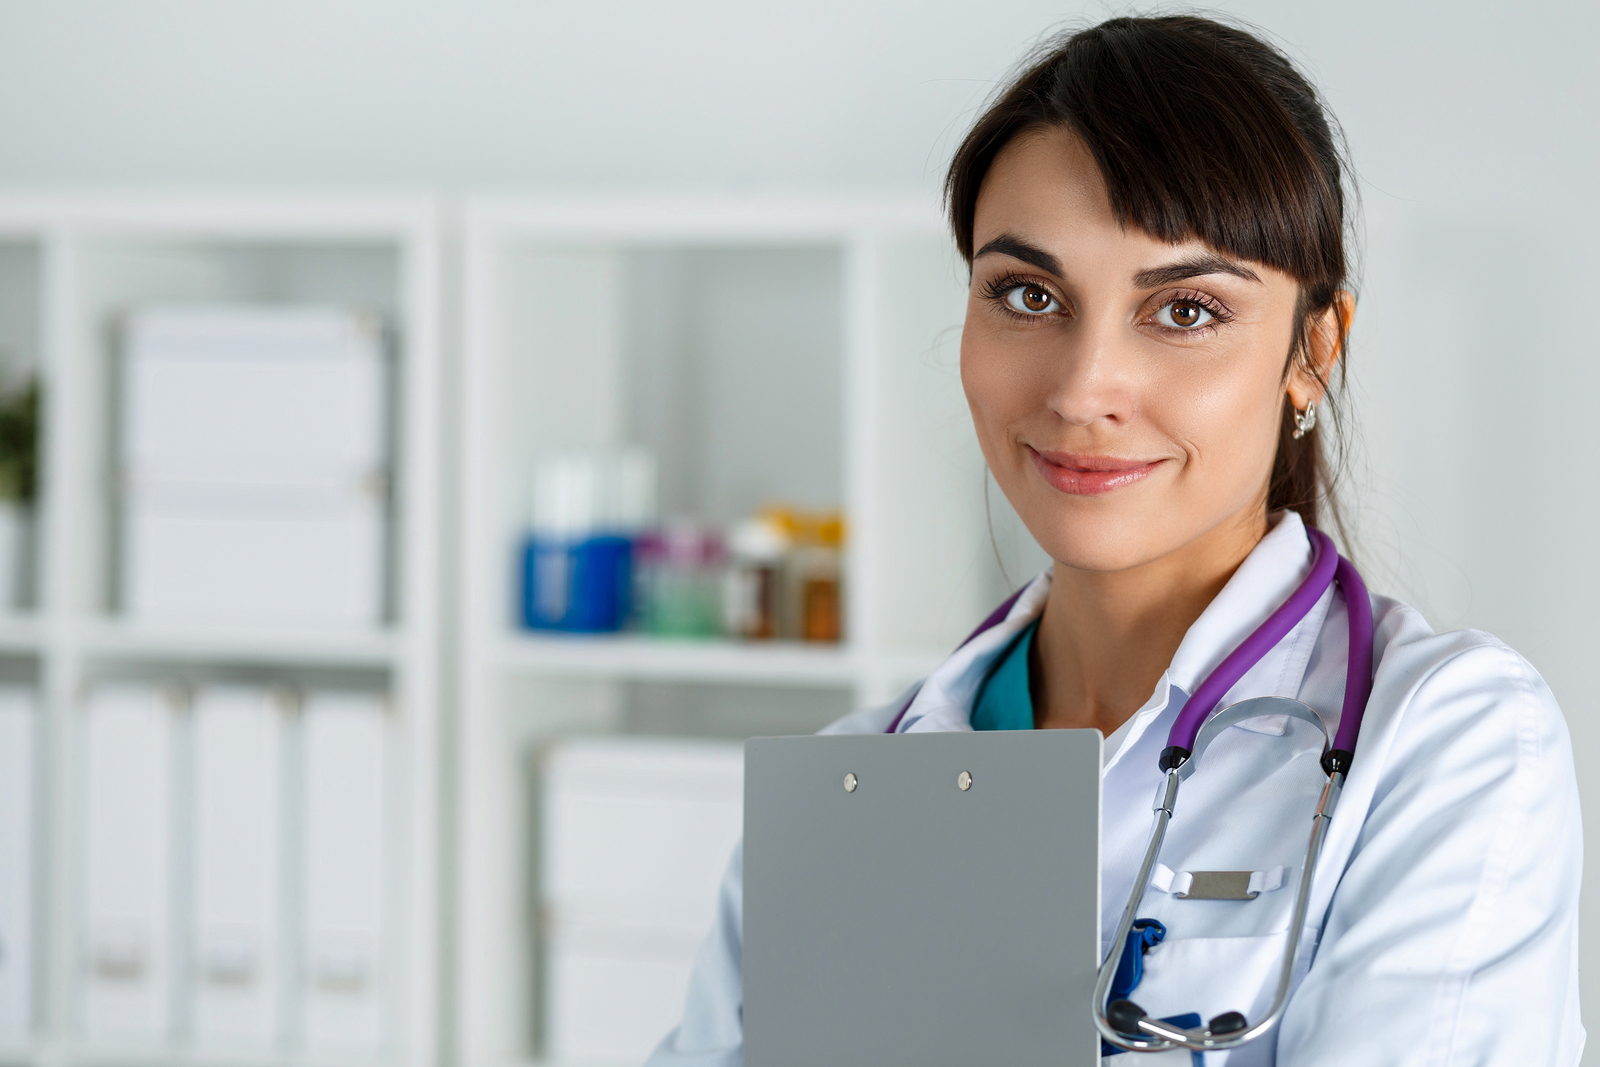 A new study proves that it's not easy being a physician and a mom.